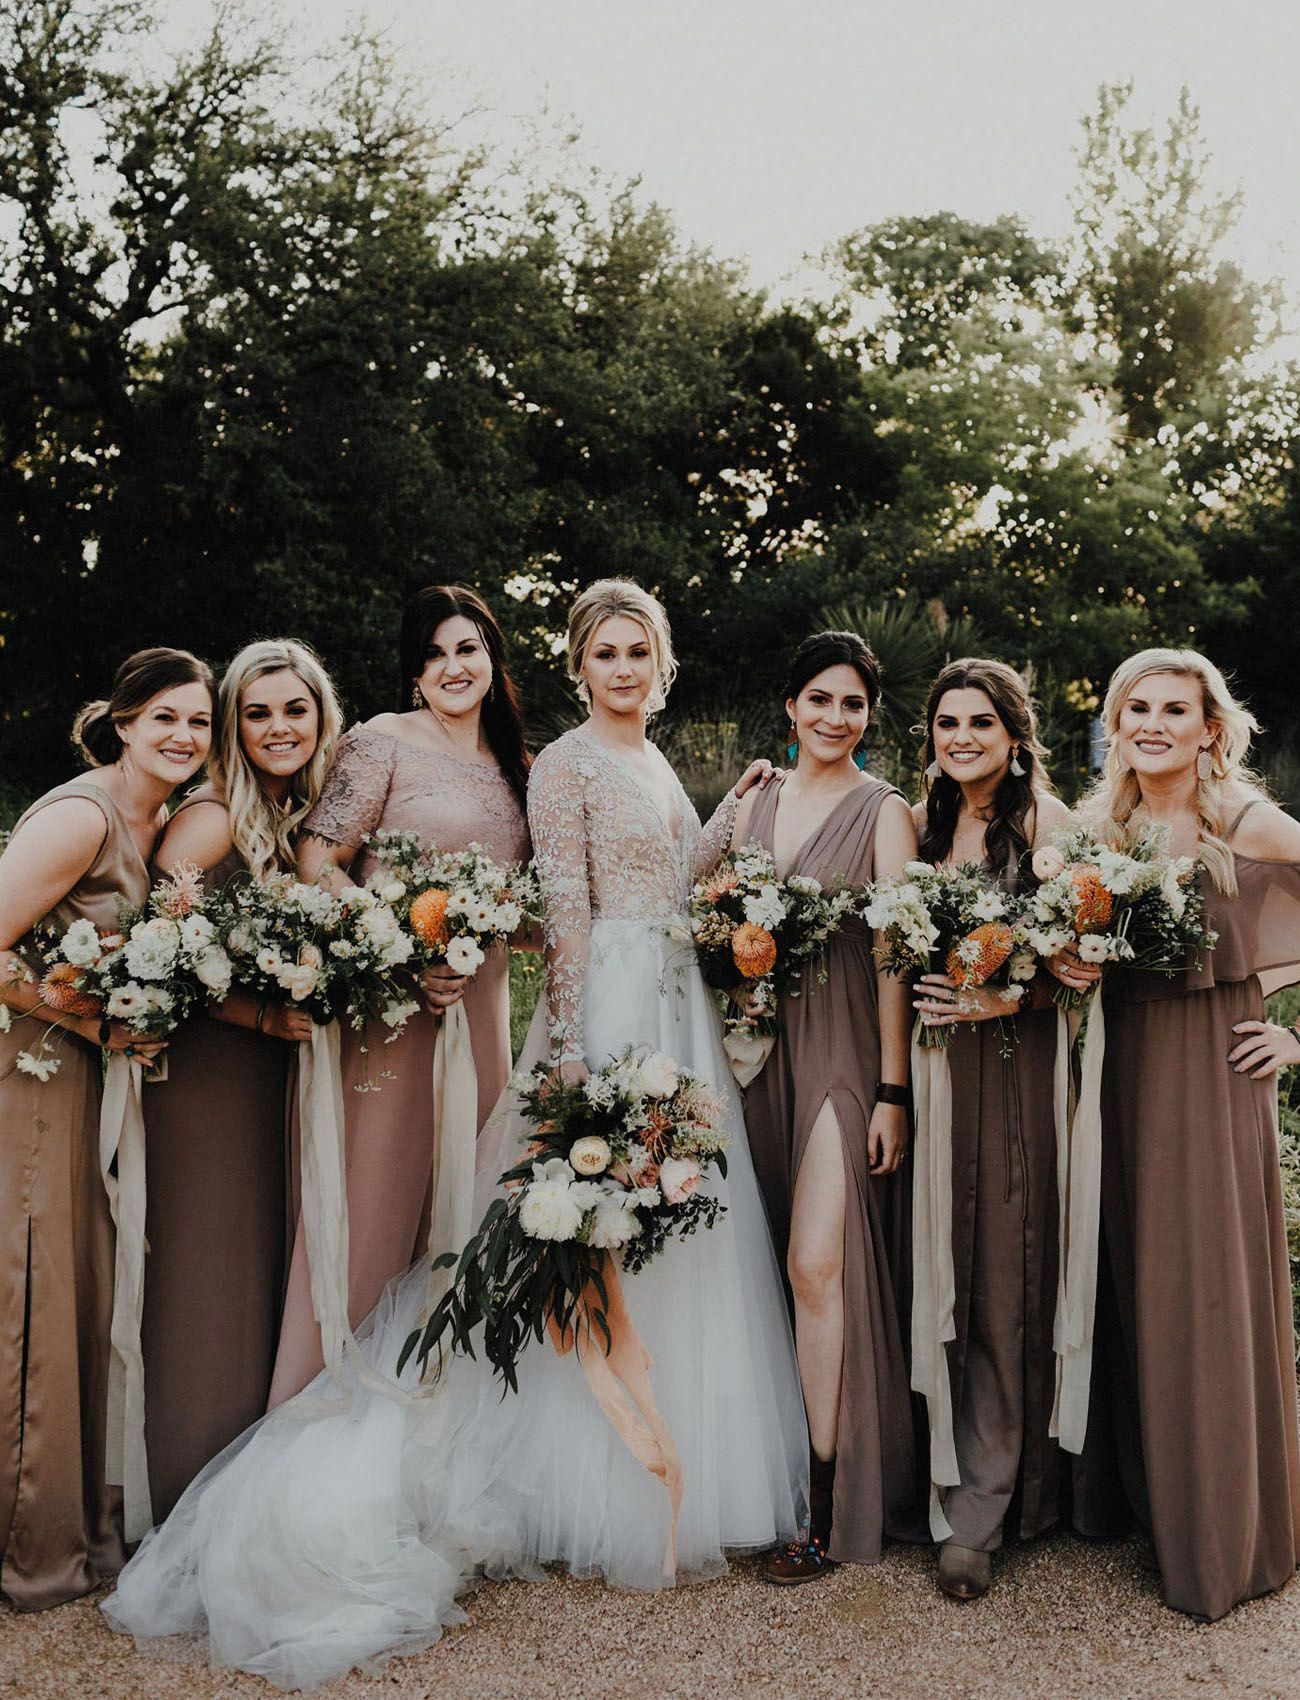 How to Choose Your Wedding Colors Neutral bridesmaid